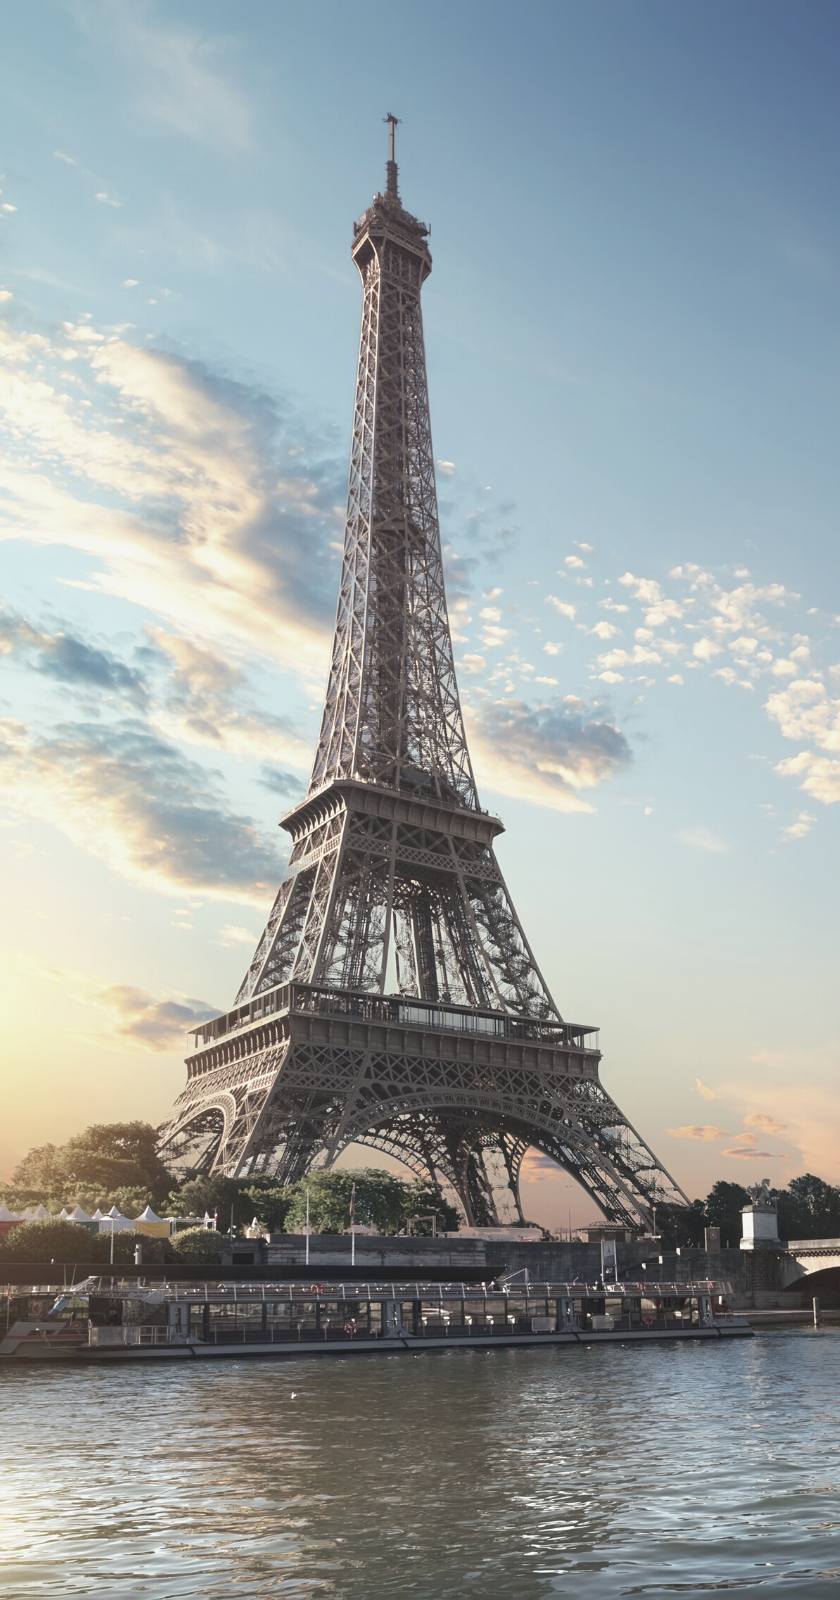 Wallpapers for iPhone in 2020 Paris tumblr, France